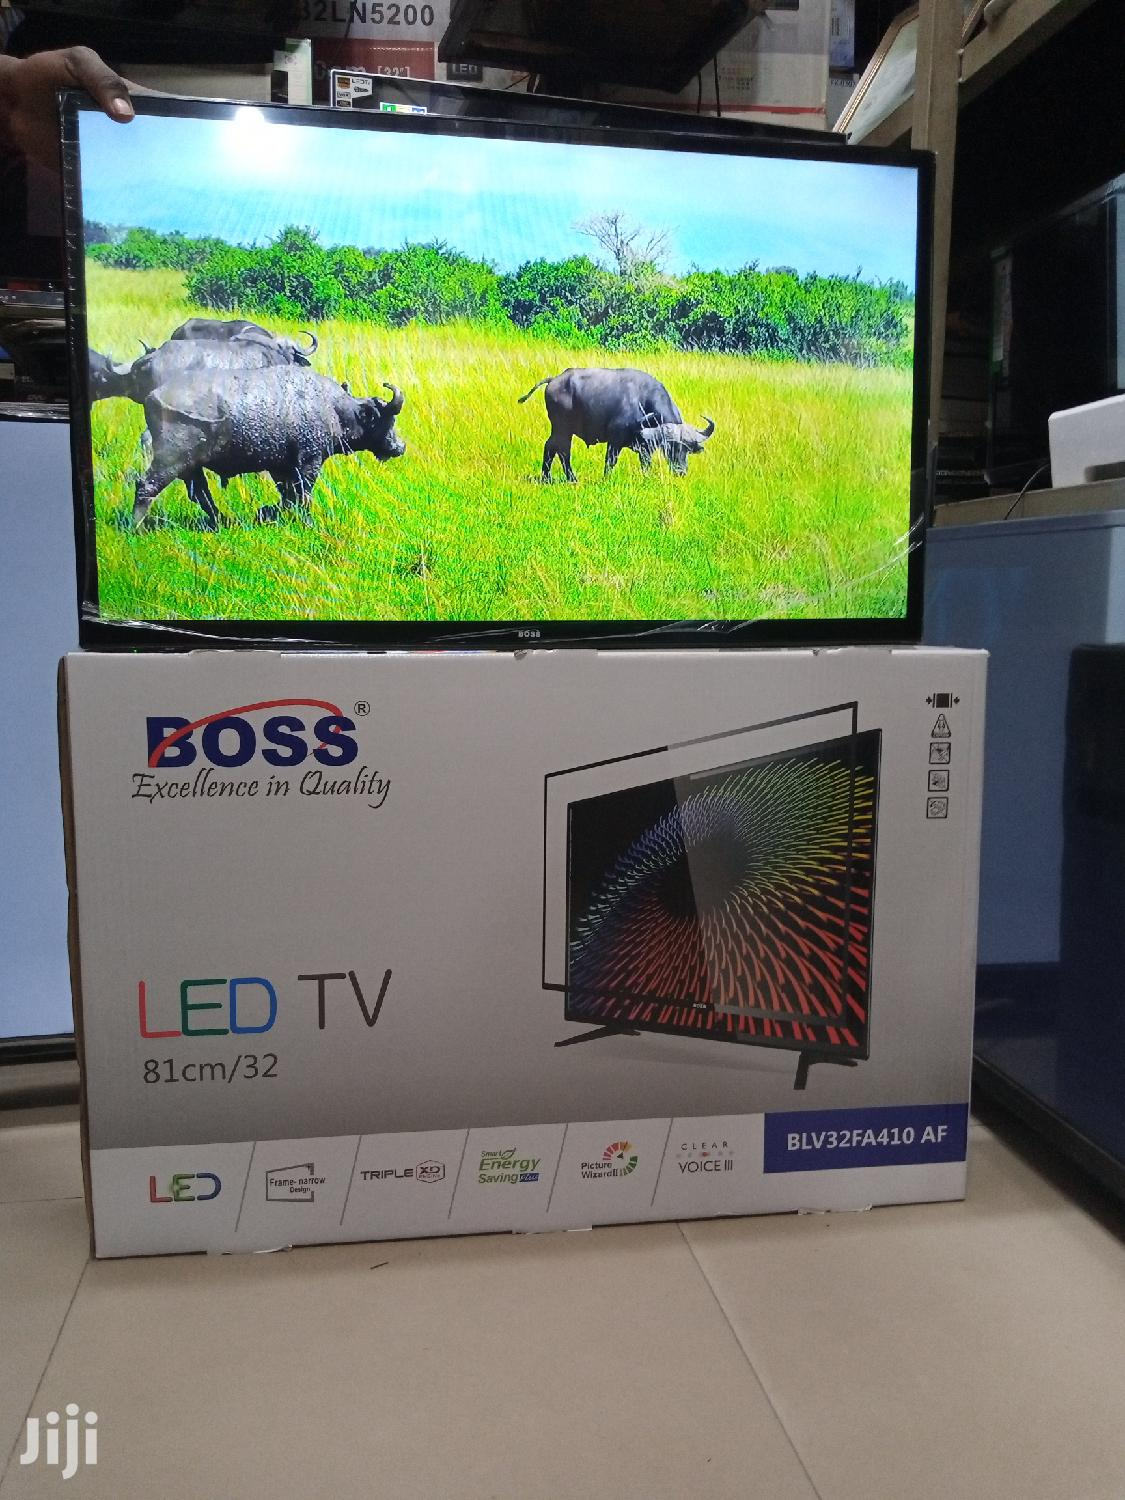 Boss LED TV Inch 32 | TV & DVD Equipment for sale in Ilala, Dar es Salaam, Tanzania